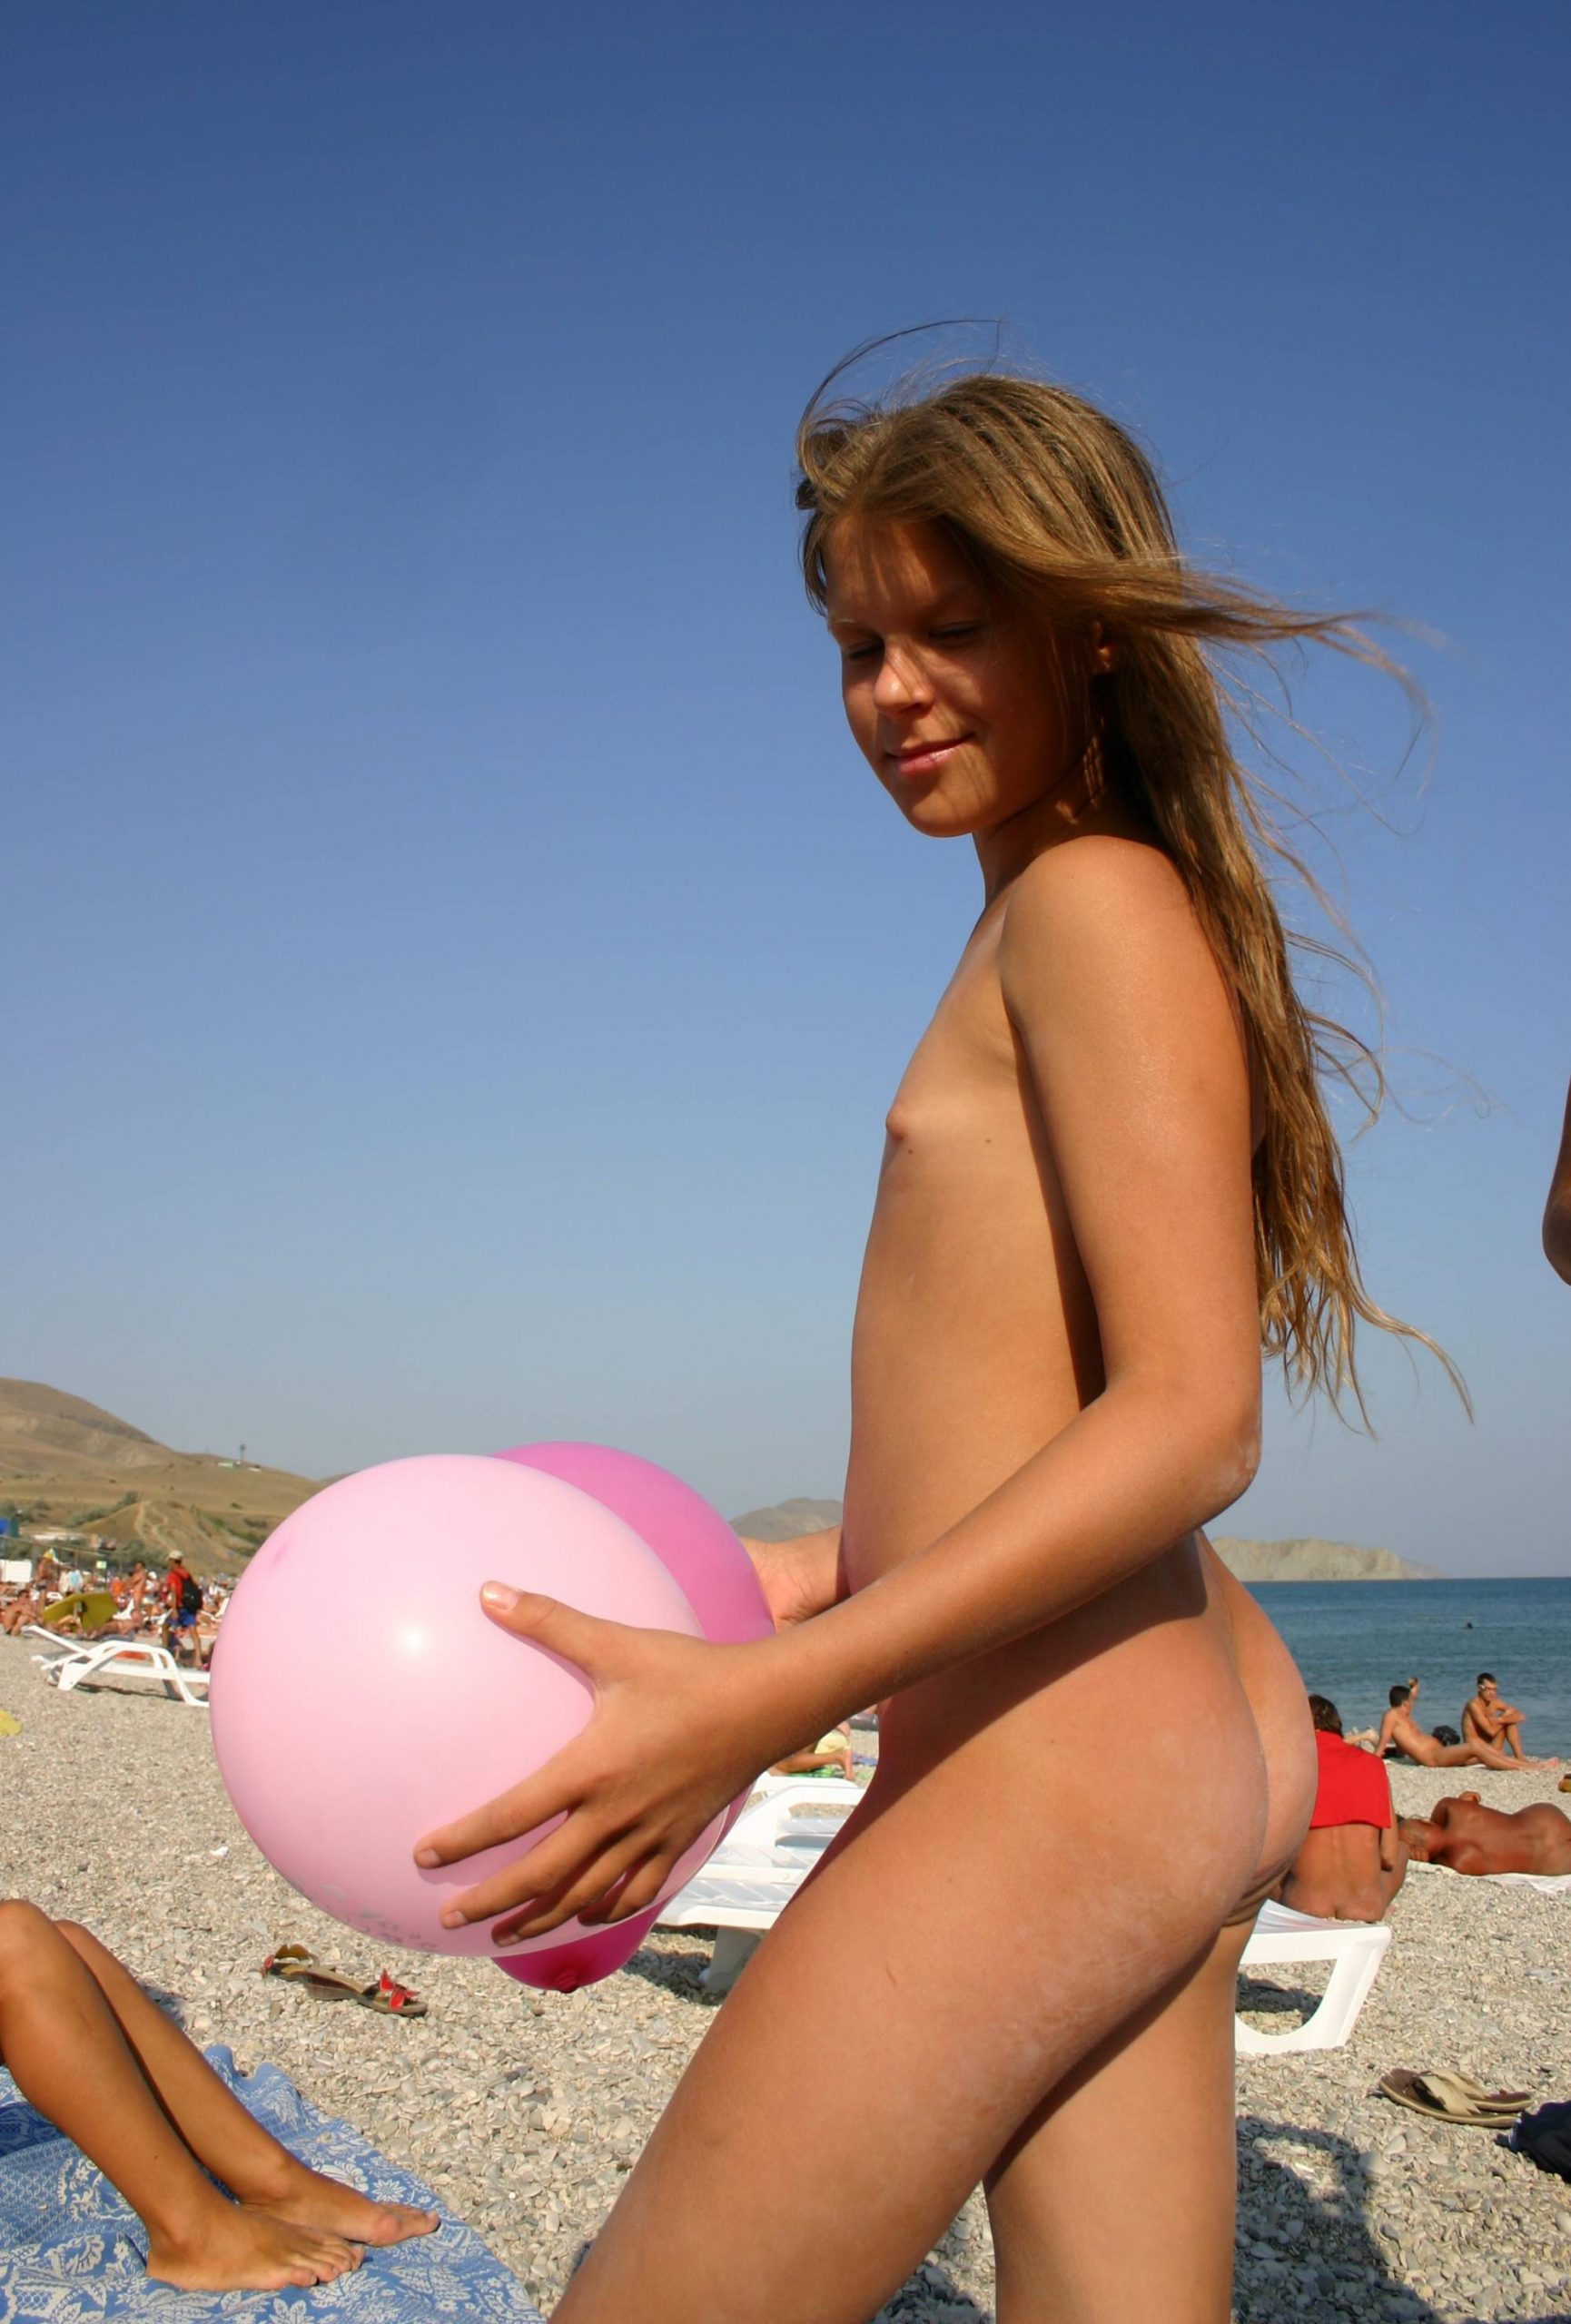 Pure Nudism Images-Our Beach Balloon Profile - 4